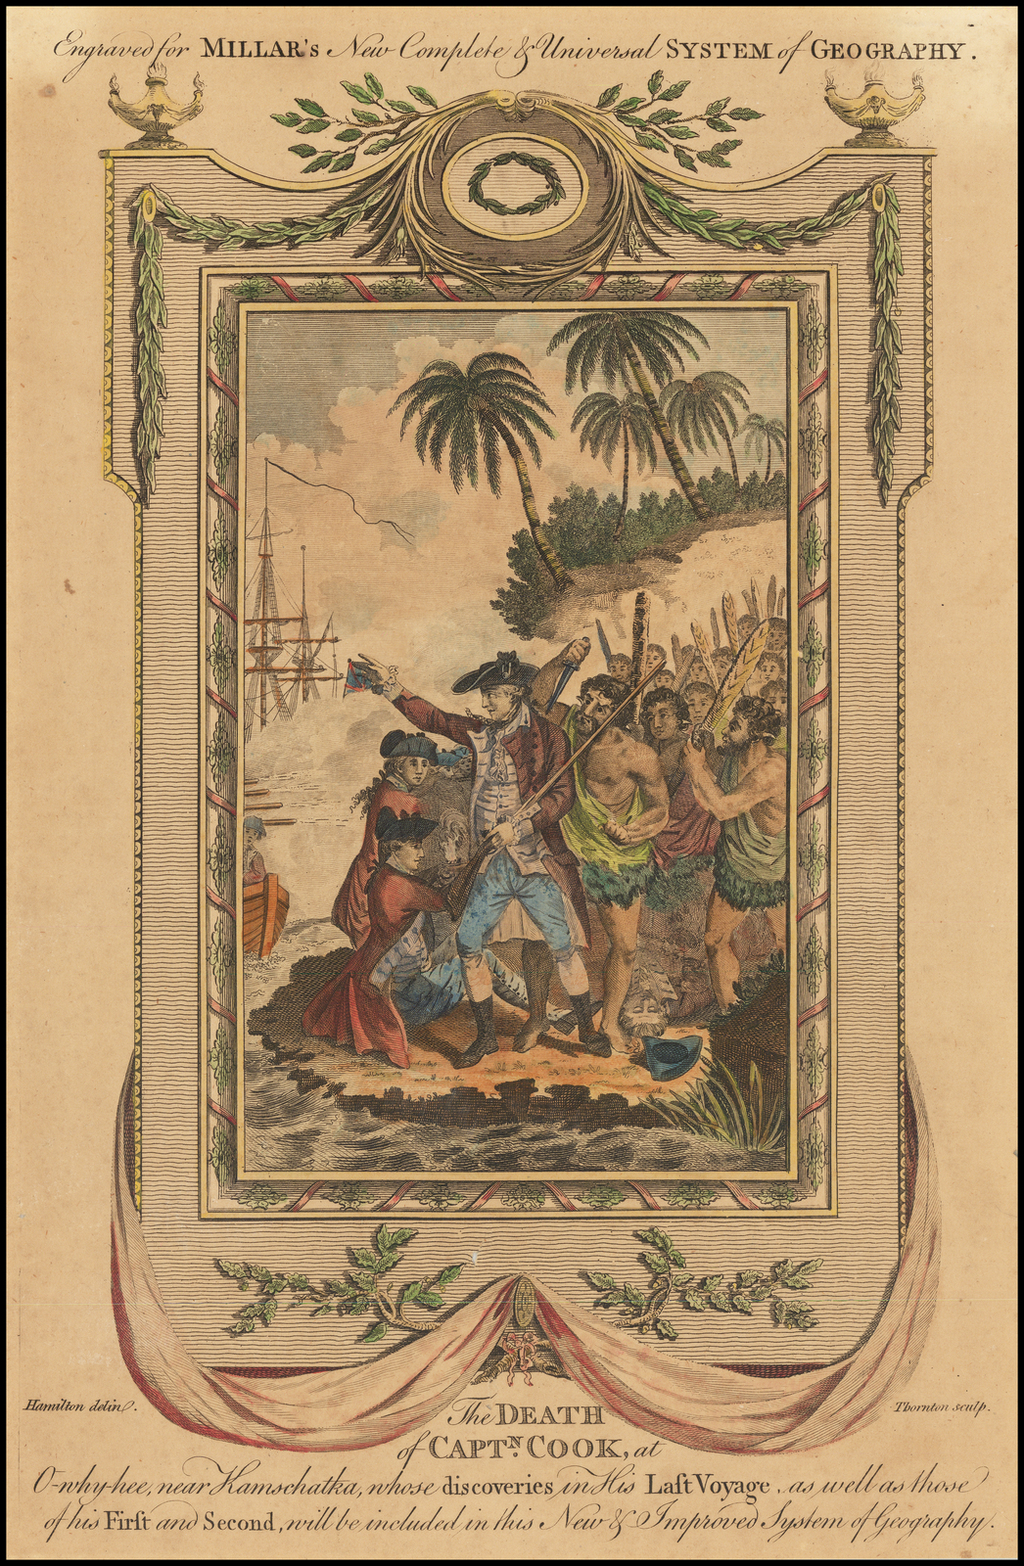 The Death of Captn. Cook, at O-why-hee, near Kamschatka, whose discoveries in His Last Voyage, as well as those of this First and Second, will be inlcuded in this New & Improved System of Geography By Andrew Millar